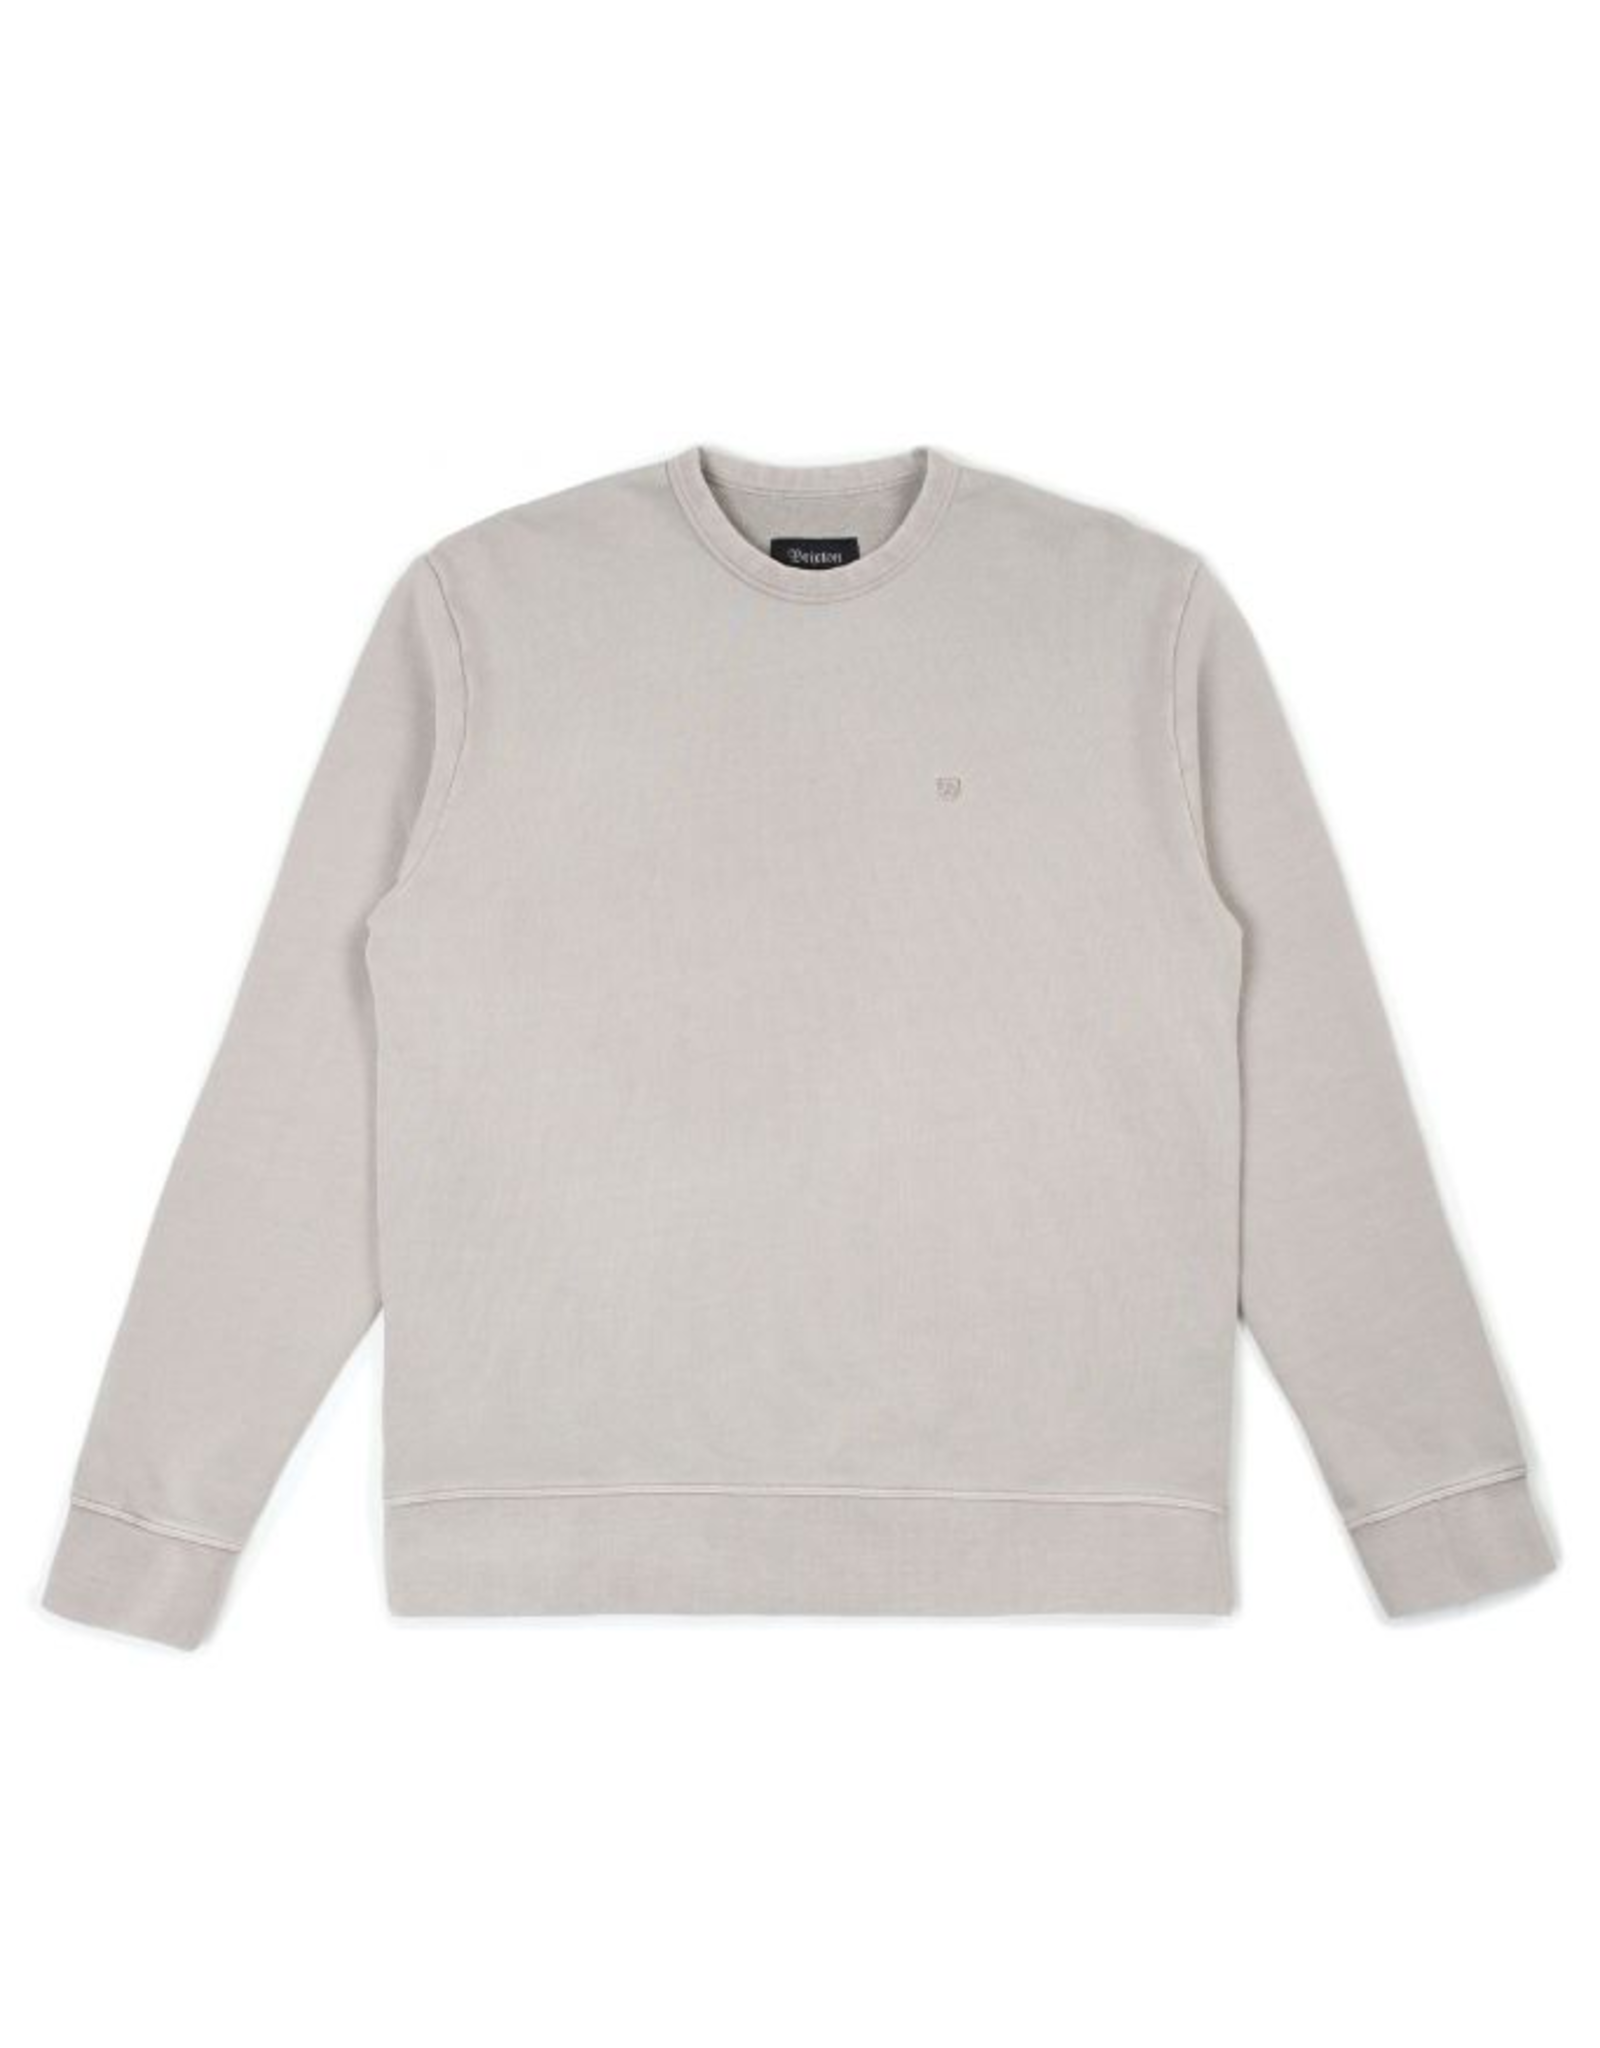 Brixton B-Shield French Terry Crew - Silver